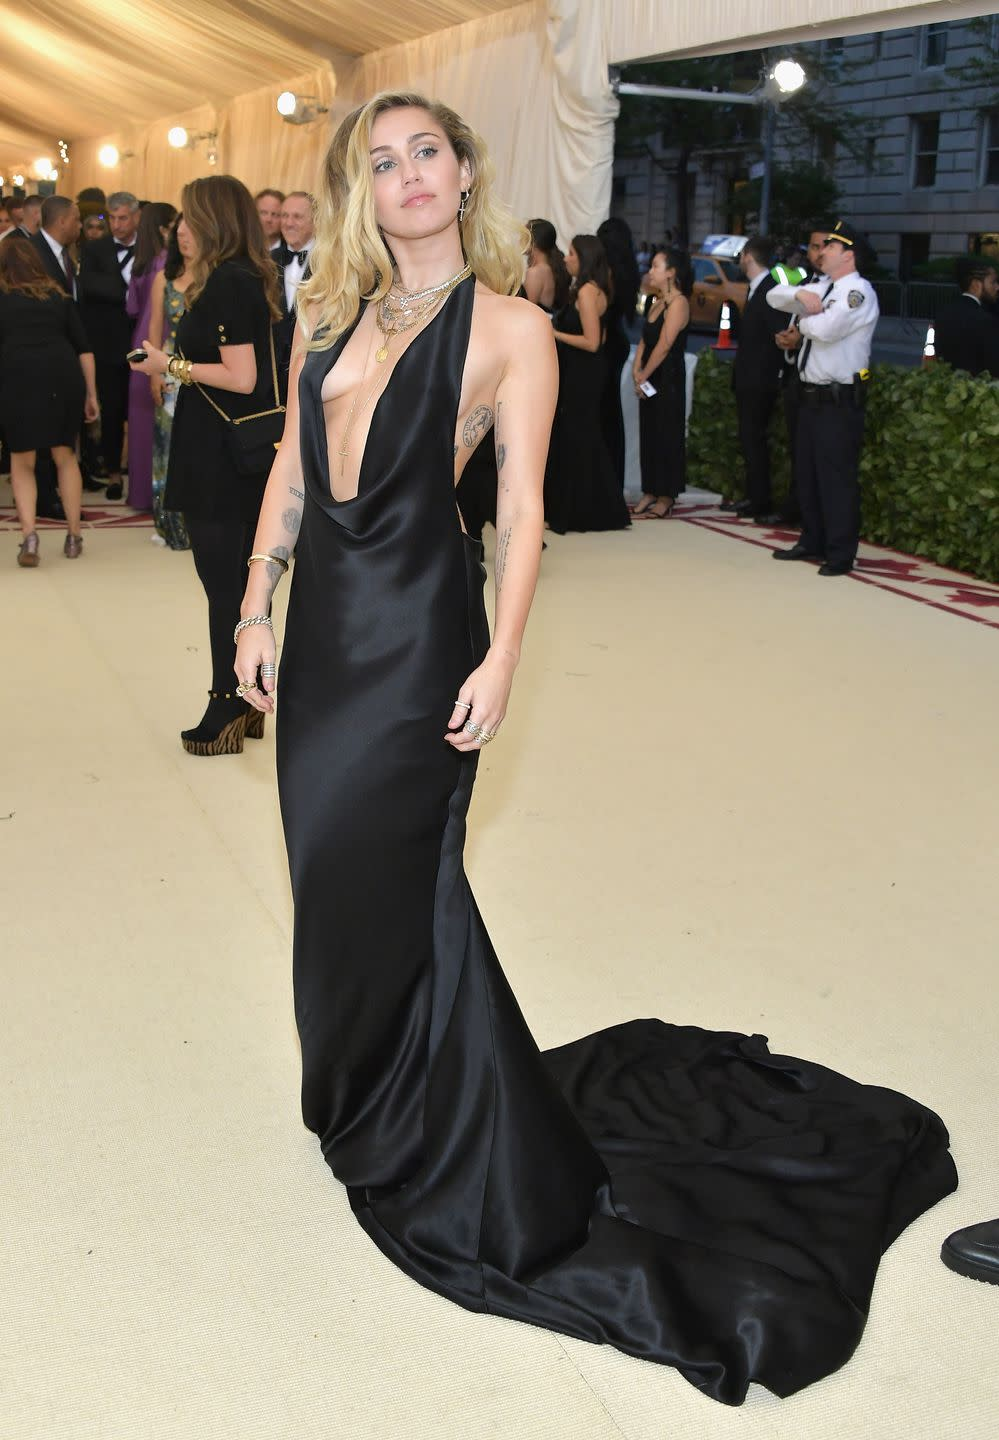 Miley Cyrus\'s Met Gala Dress Dips Dangerously Low [Video]